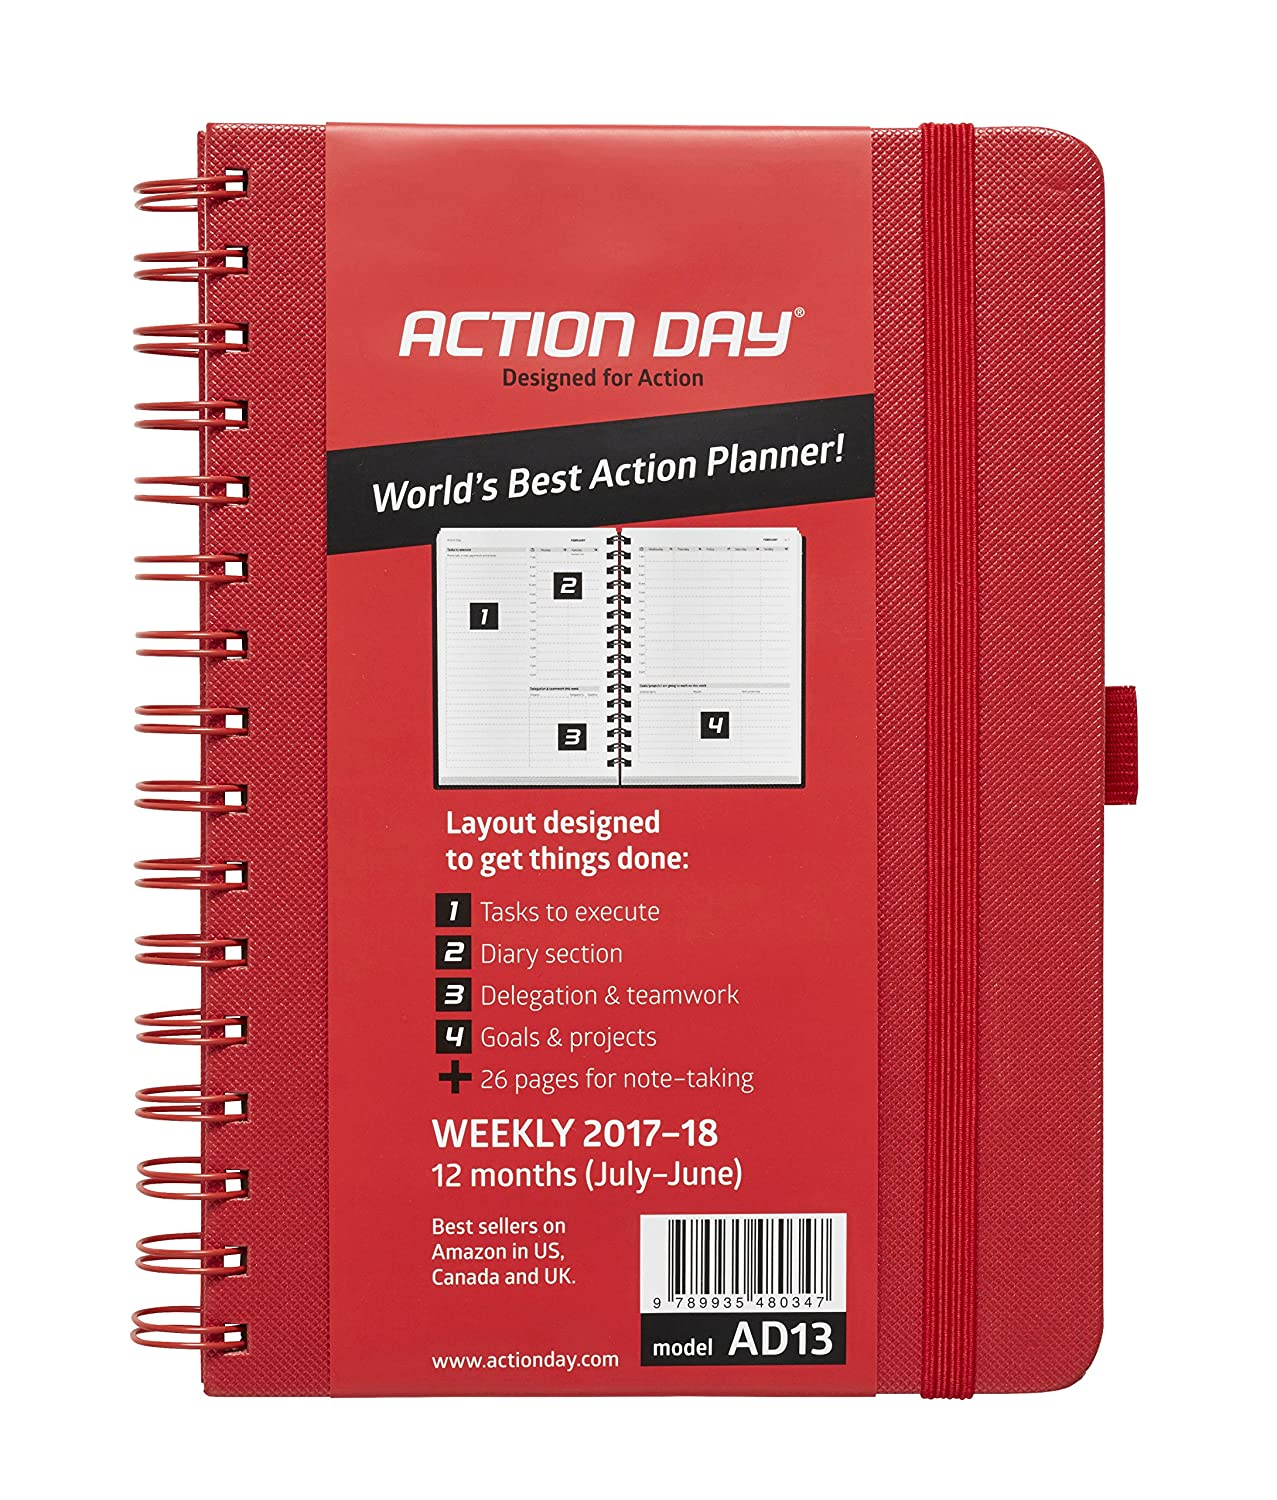 Designed to Get Things Done Action Day 2017 Organizer /& Goal Journal Appointment Weekly Daily Monthly Yearly Agenda World/´s Best Action Planner 6x8 // Wire-Bound//Black Calender